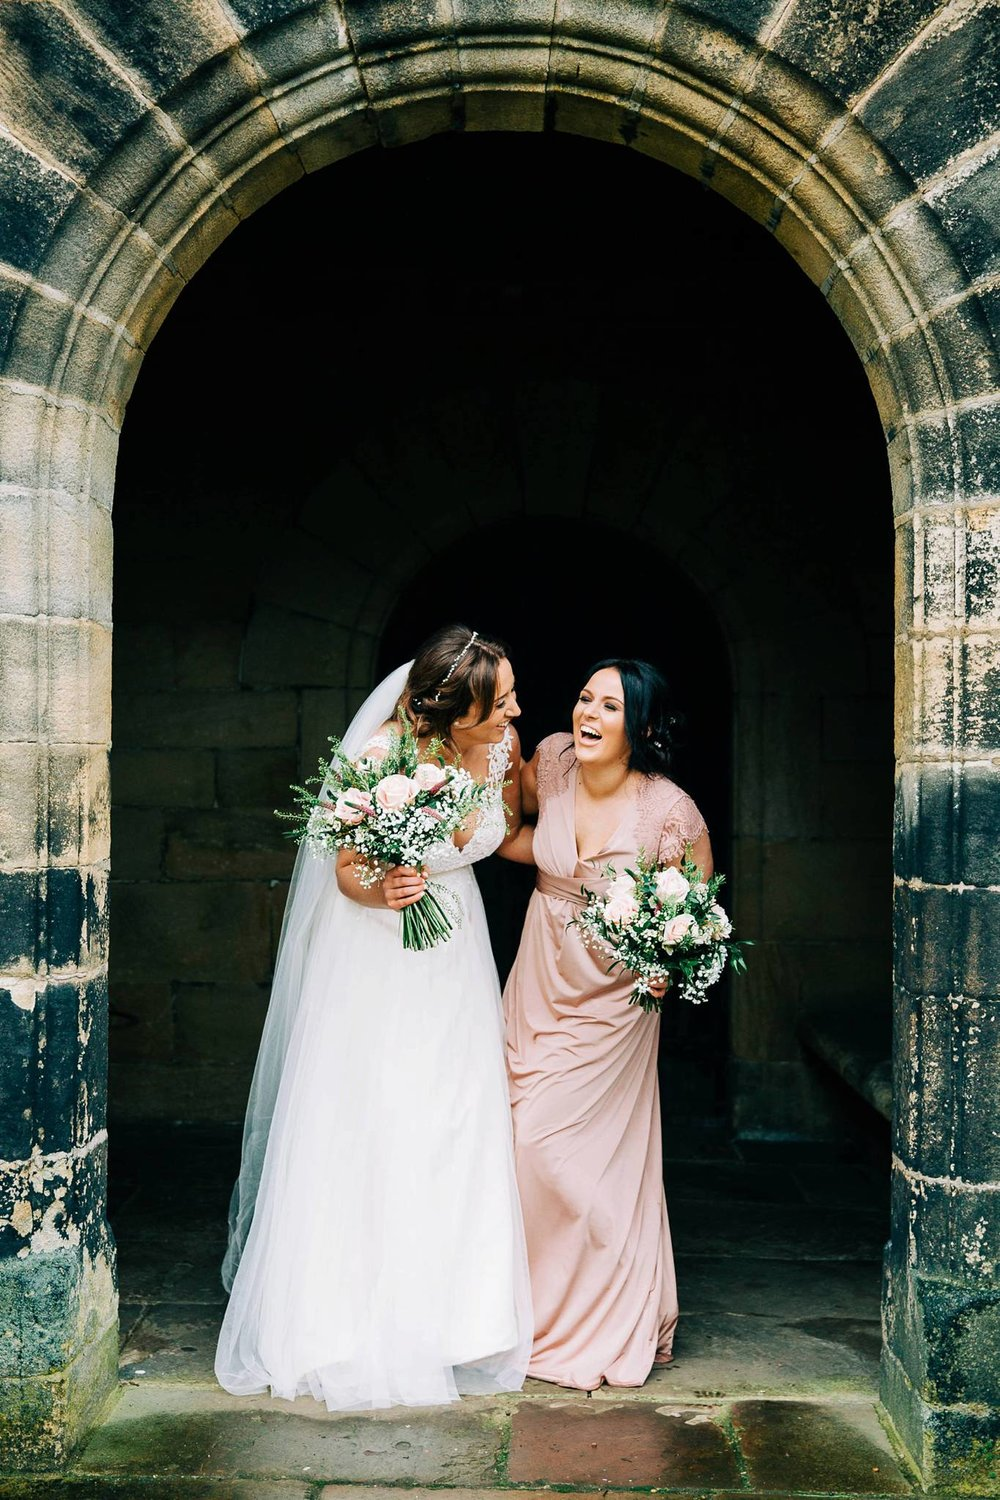 Natural wedding photography Manchester - Clare Robinson Photography_0057.jpg